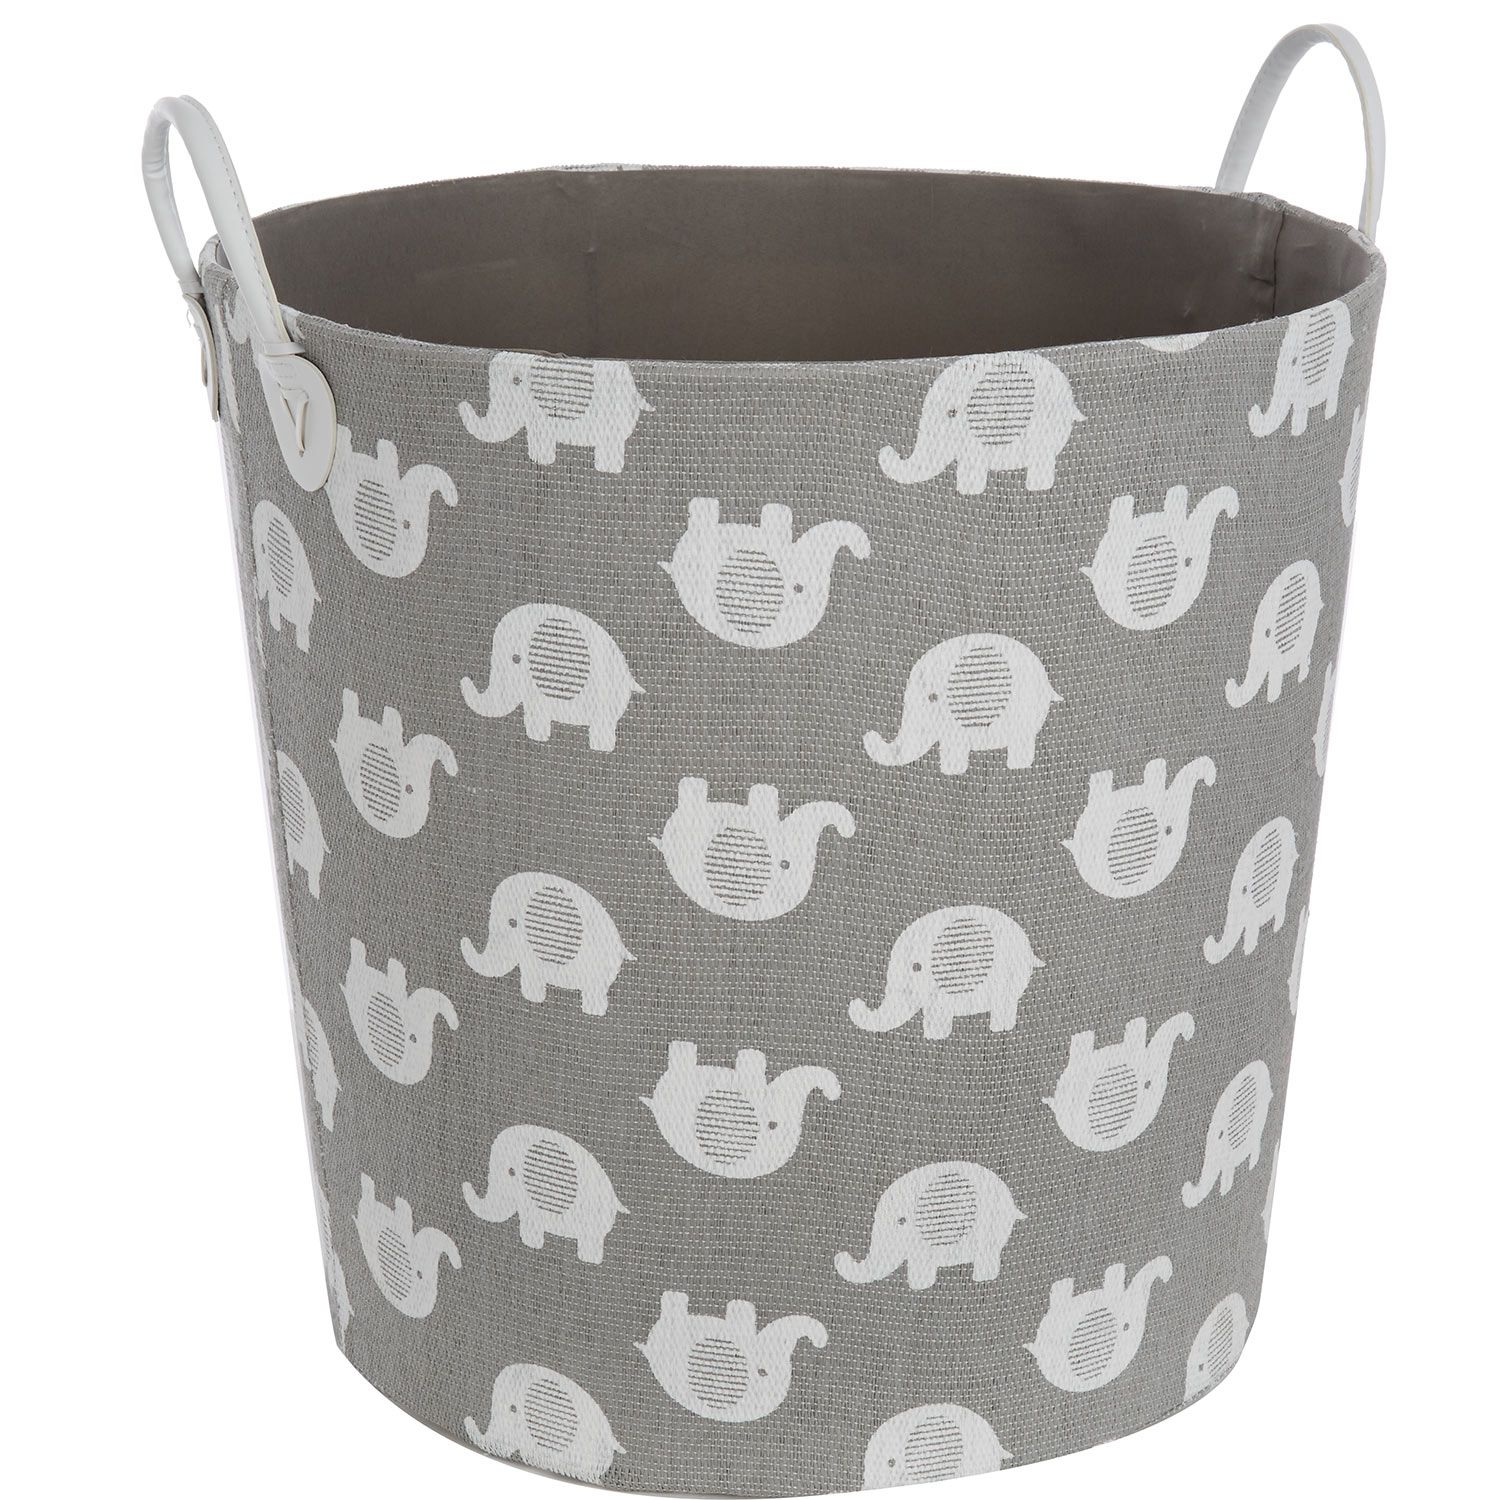 Quot Tm Designs Quot Grey Elephant Print Storage Basket Tk Maxx